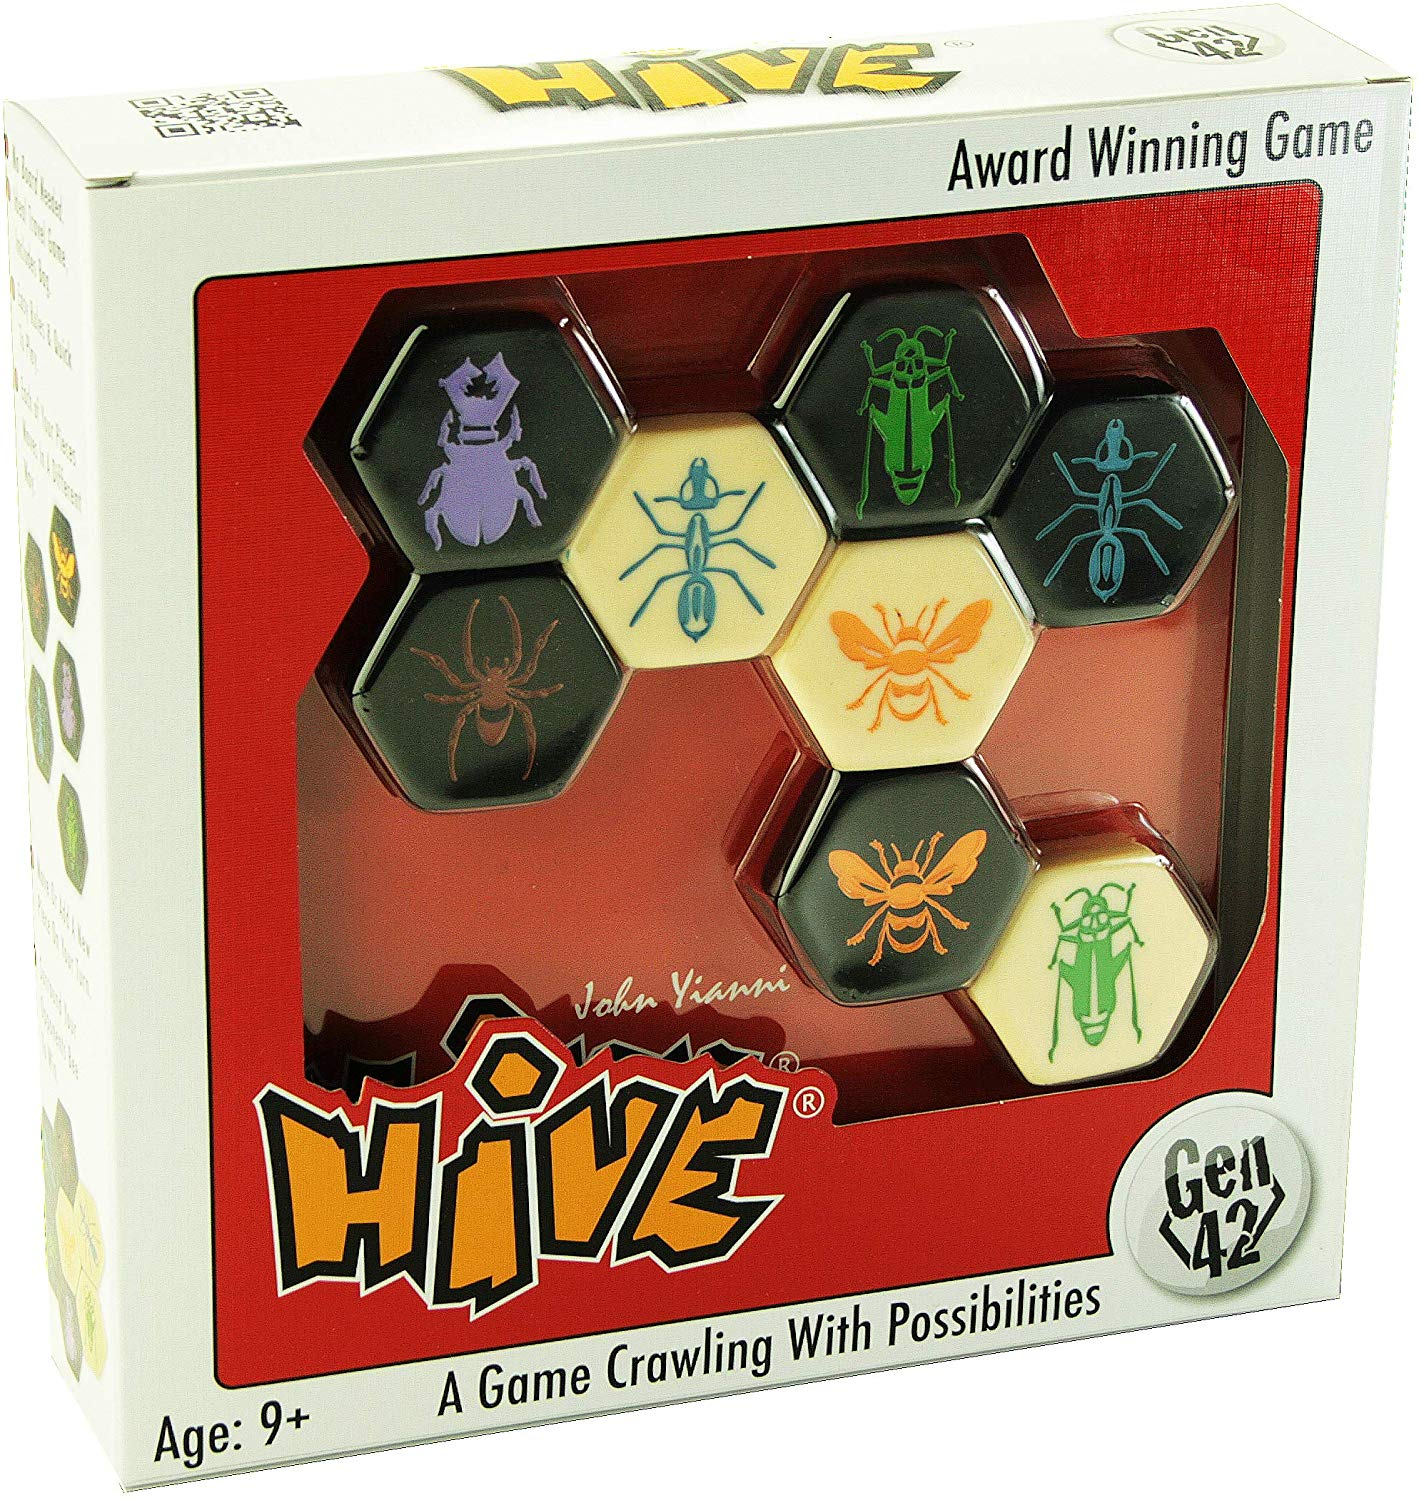 Some of the pieces from the game Hive.